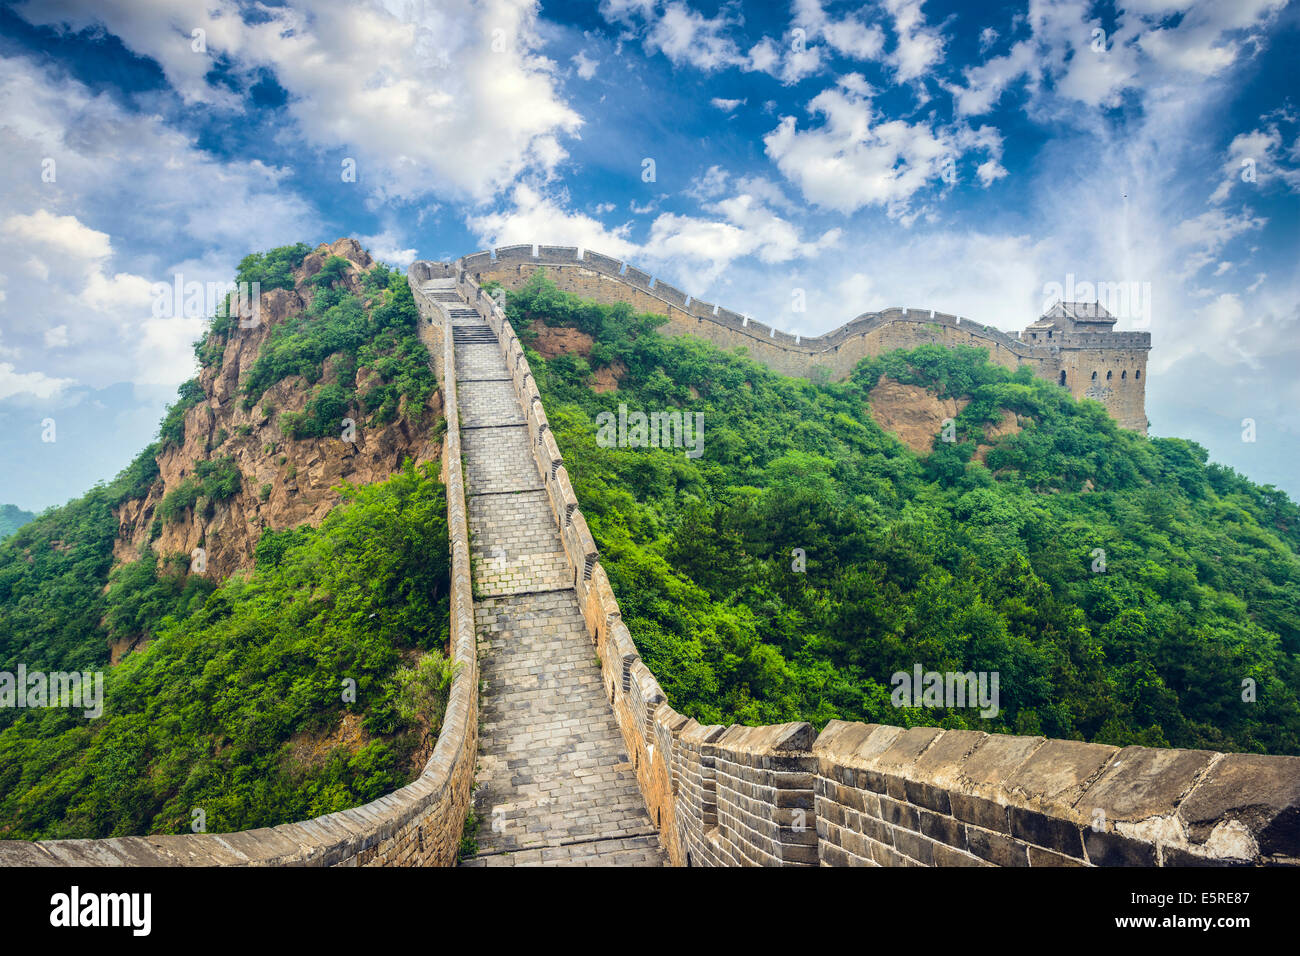 Grande Muraille de Chine. Les sections non réhabilitées à Jinshanling. Photo Stock